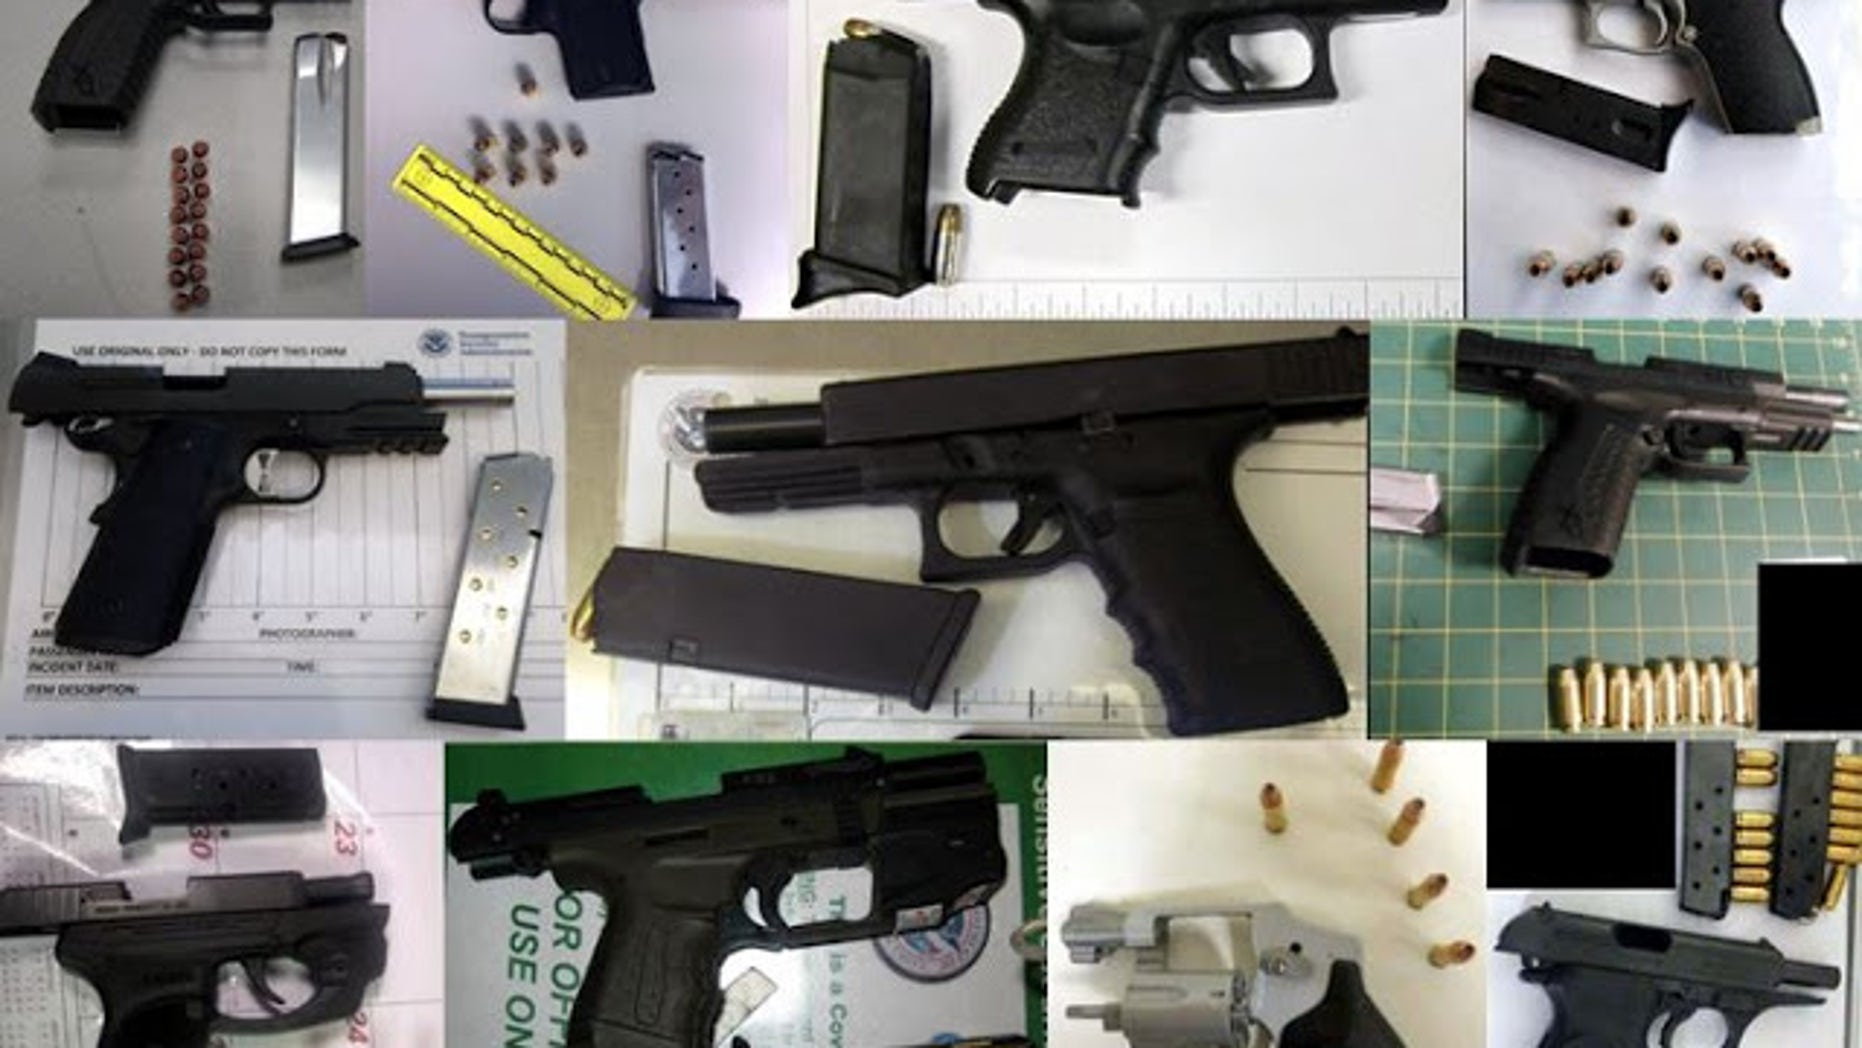 TSA agents found 74 firearms during a period of one week in July.